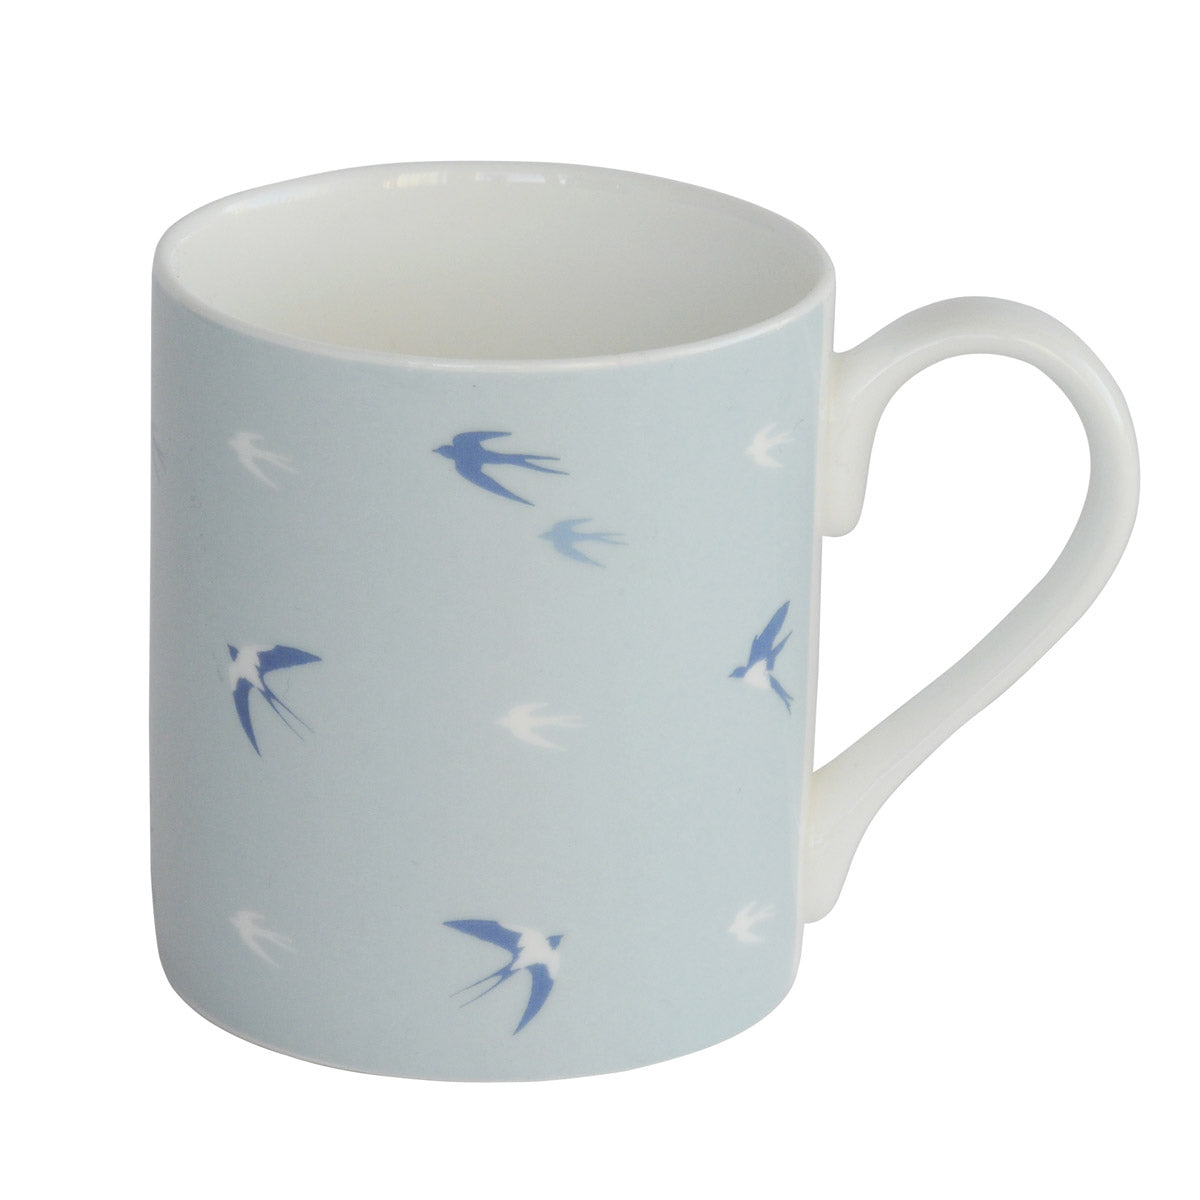 Swallow Mug - Blue